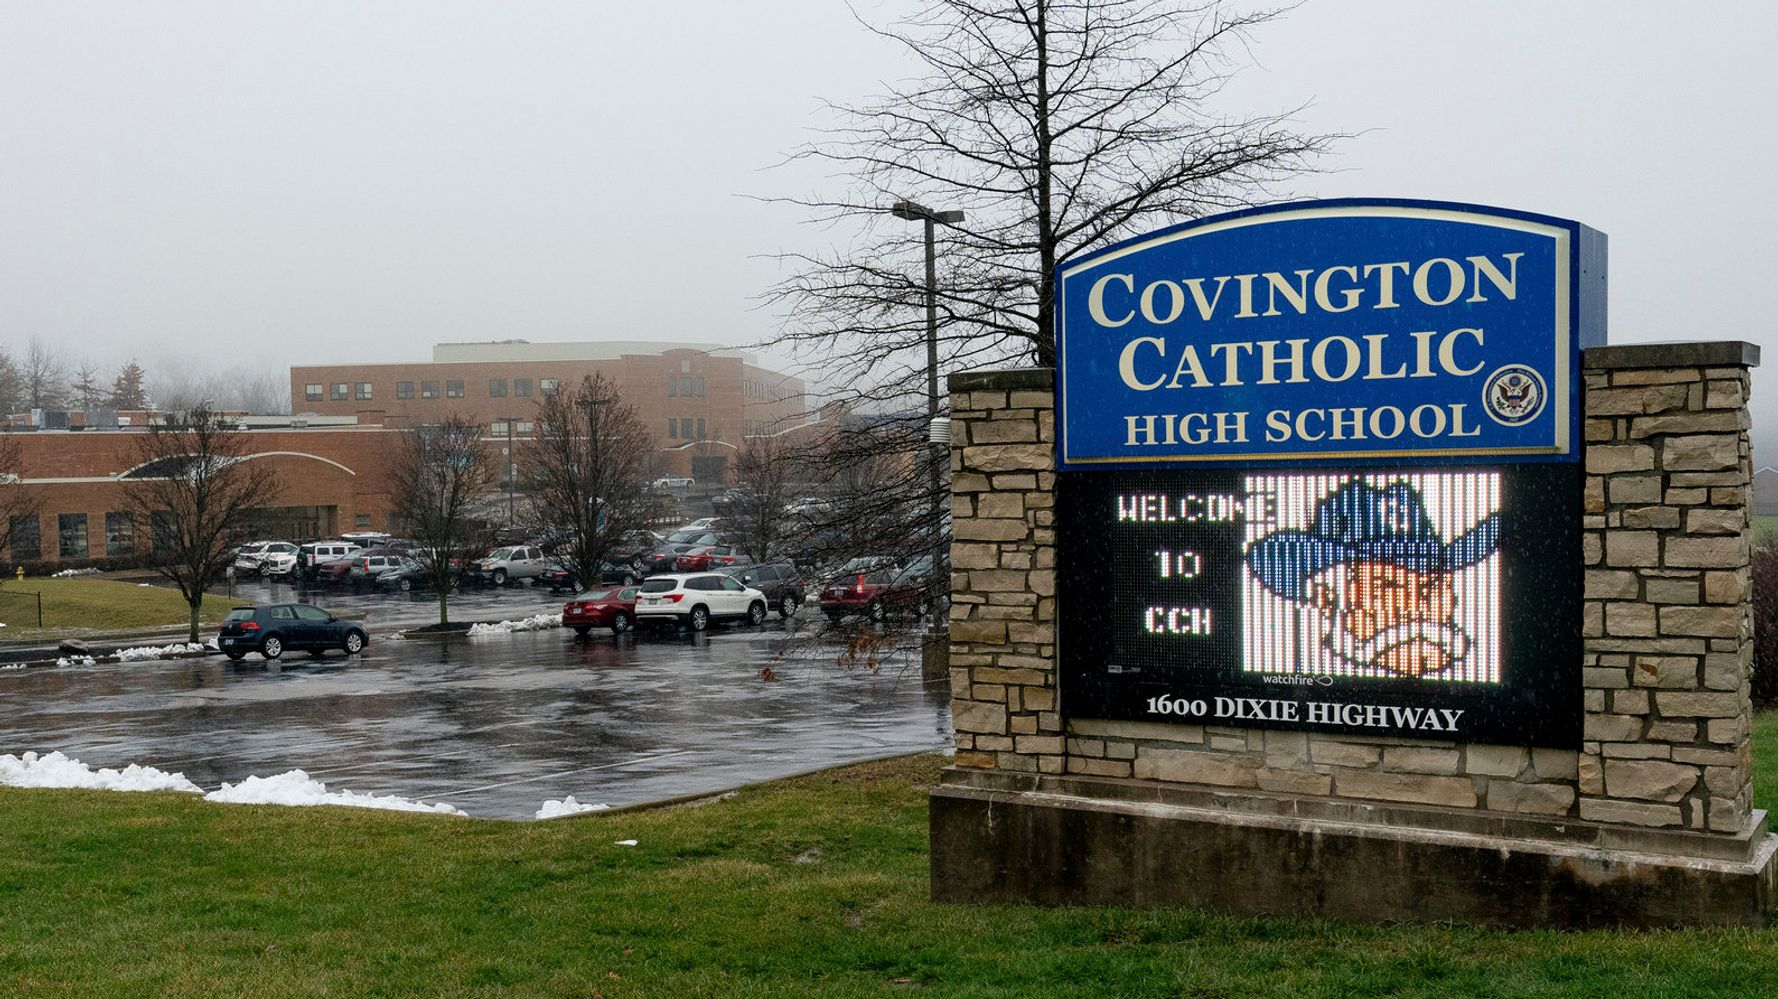 Investigation Initiated By Diocese Claims To Exonerate